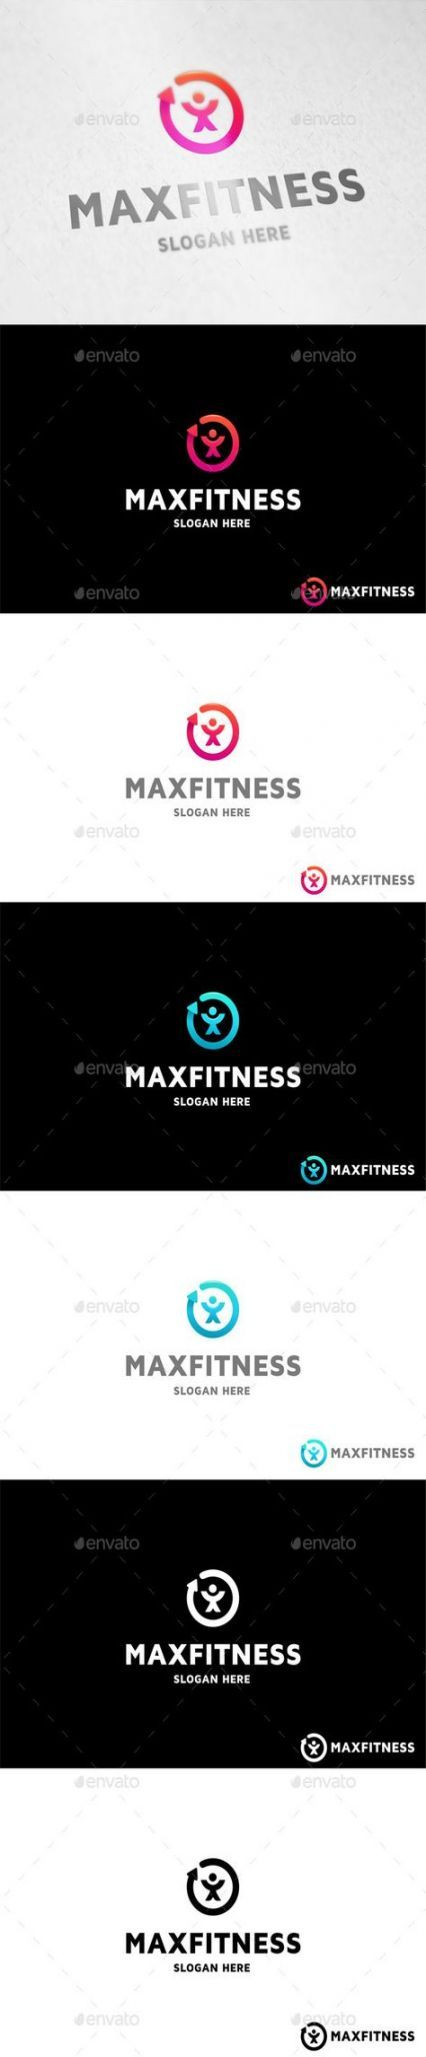 25+ New Ideas For Fitness Design Logo Colour #fitness